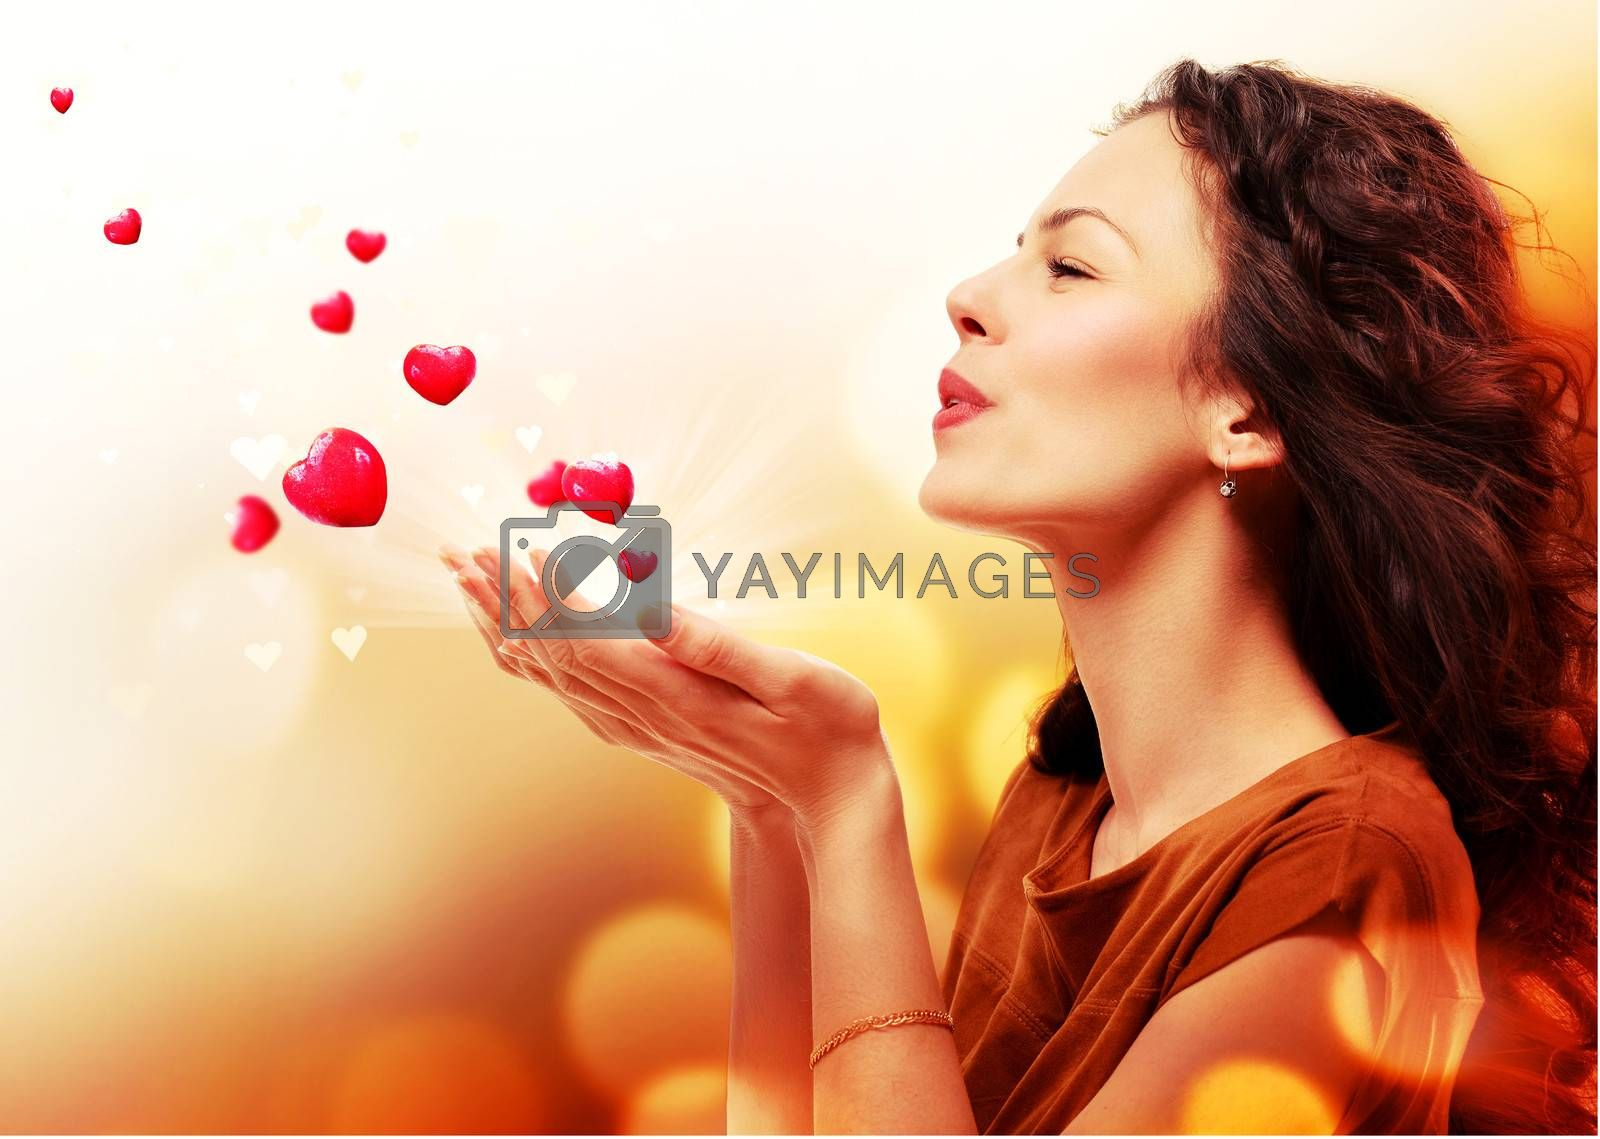 Woman Blowing Hearts from her Hands. St. Valentines Day Concept